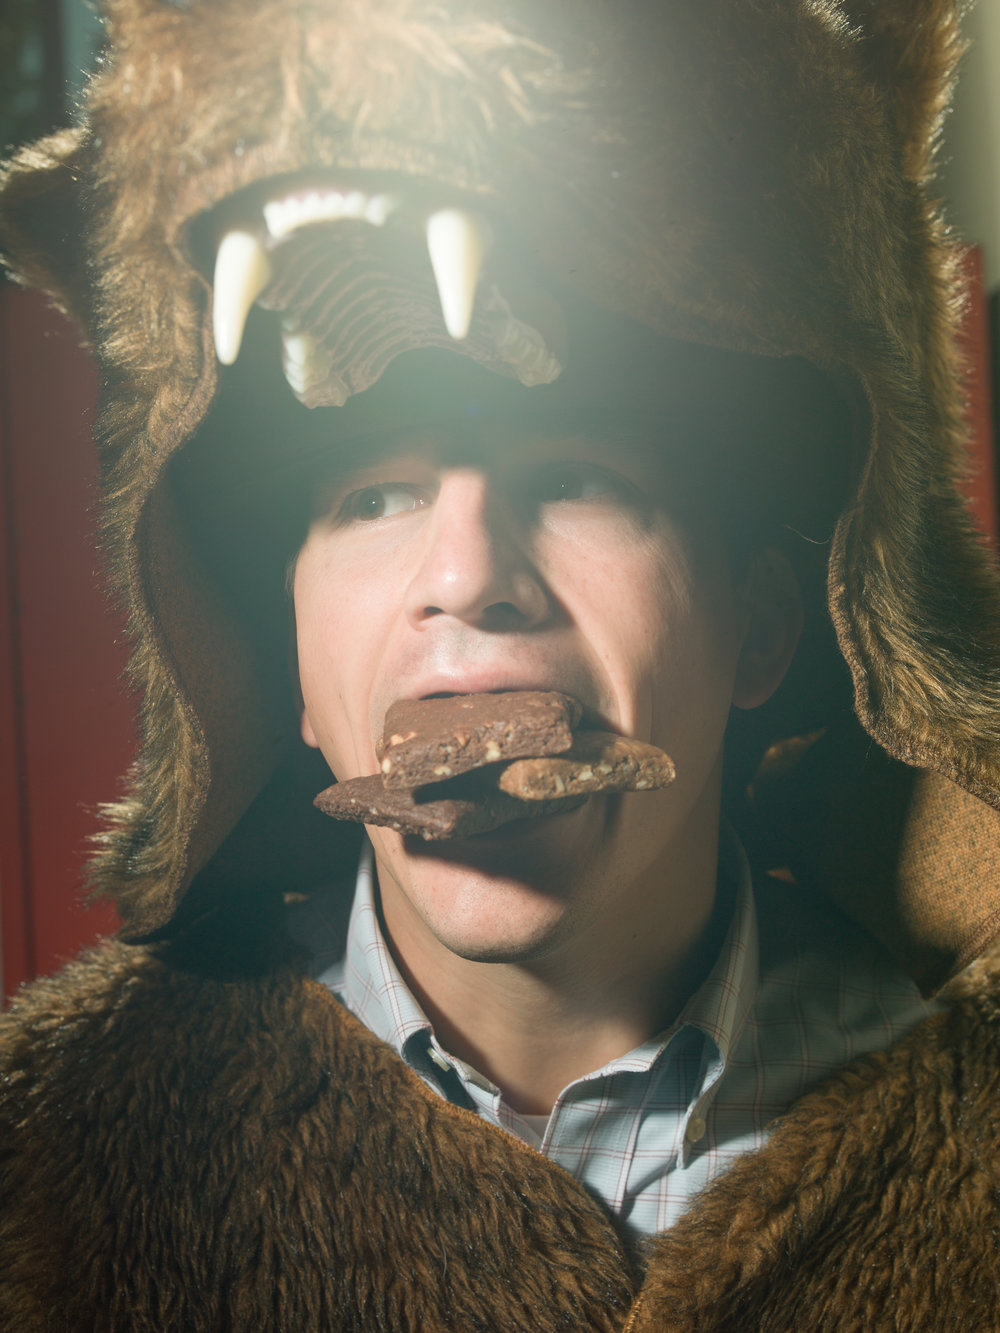 Marshall Rader, co-founder and CEO of Gluten Free Bars in his usual bear suit.